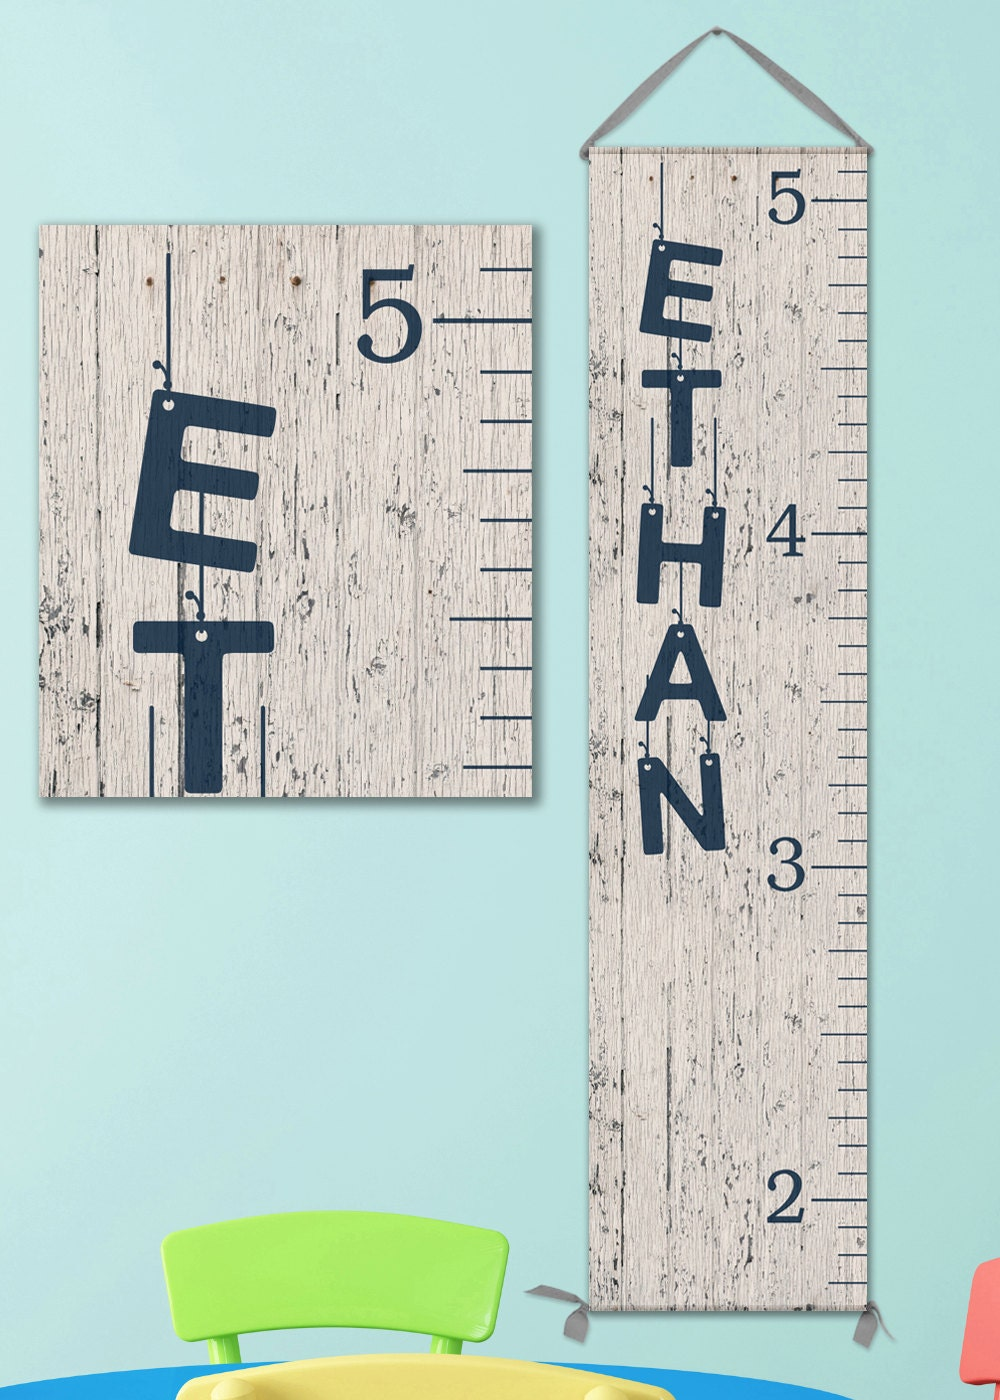 Canvas growth chart personalized image of wood growth chart canvas growth chart personalized image of wood growth chart ruler personalized baby boy gifts growth chart boy gc0100n nvjuhfo Gallery